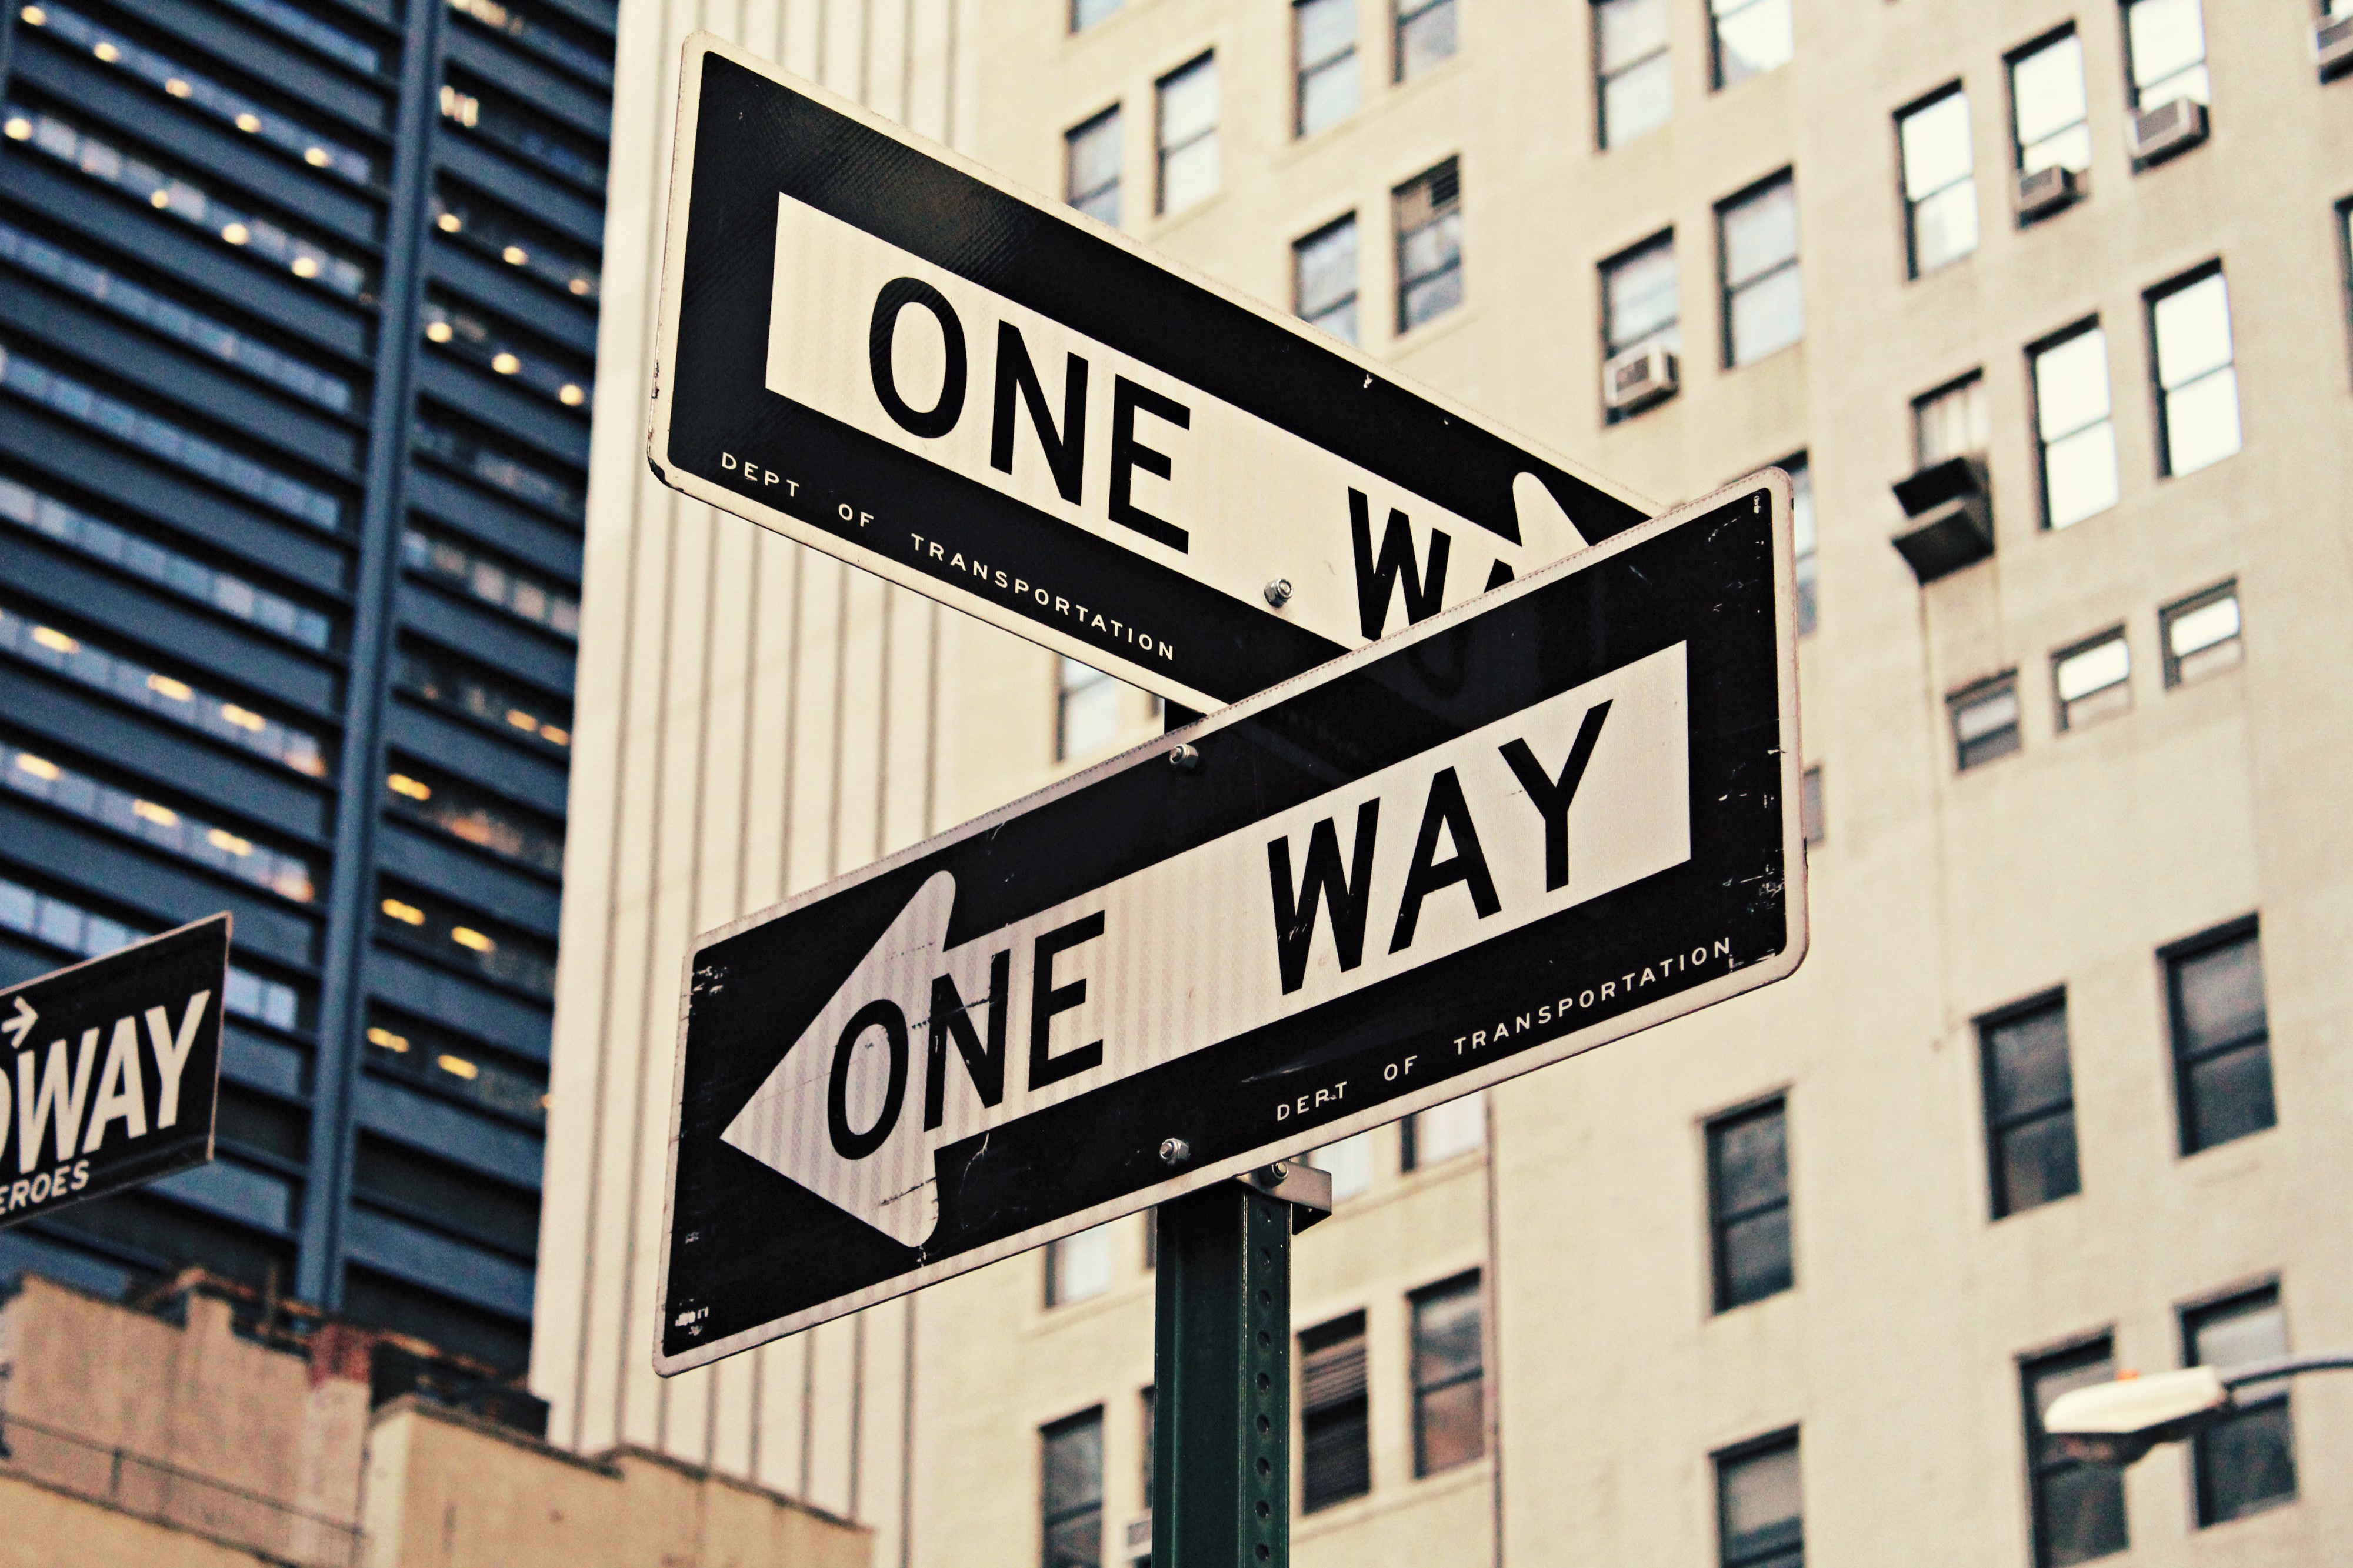 two one-way signs pointing to different streets at a city intersection